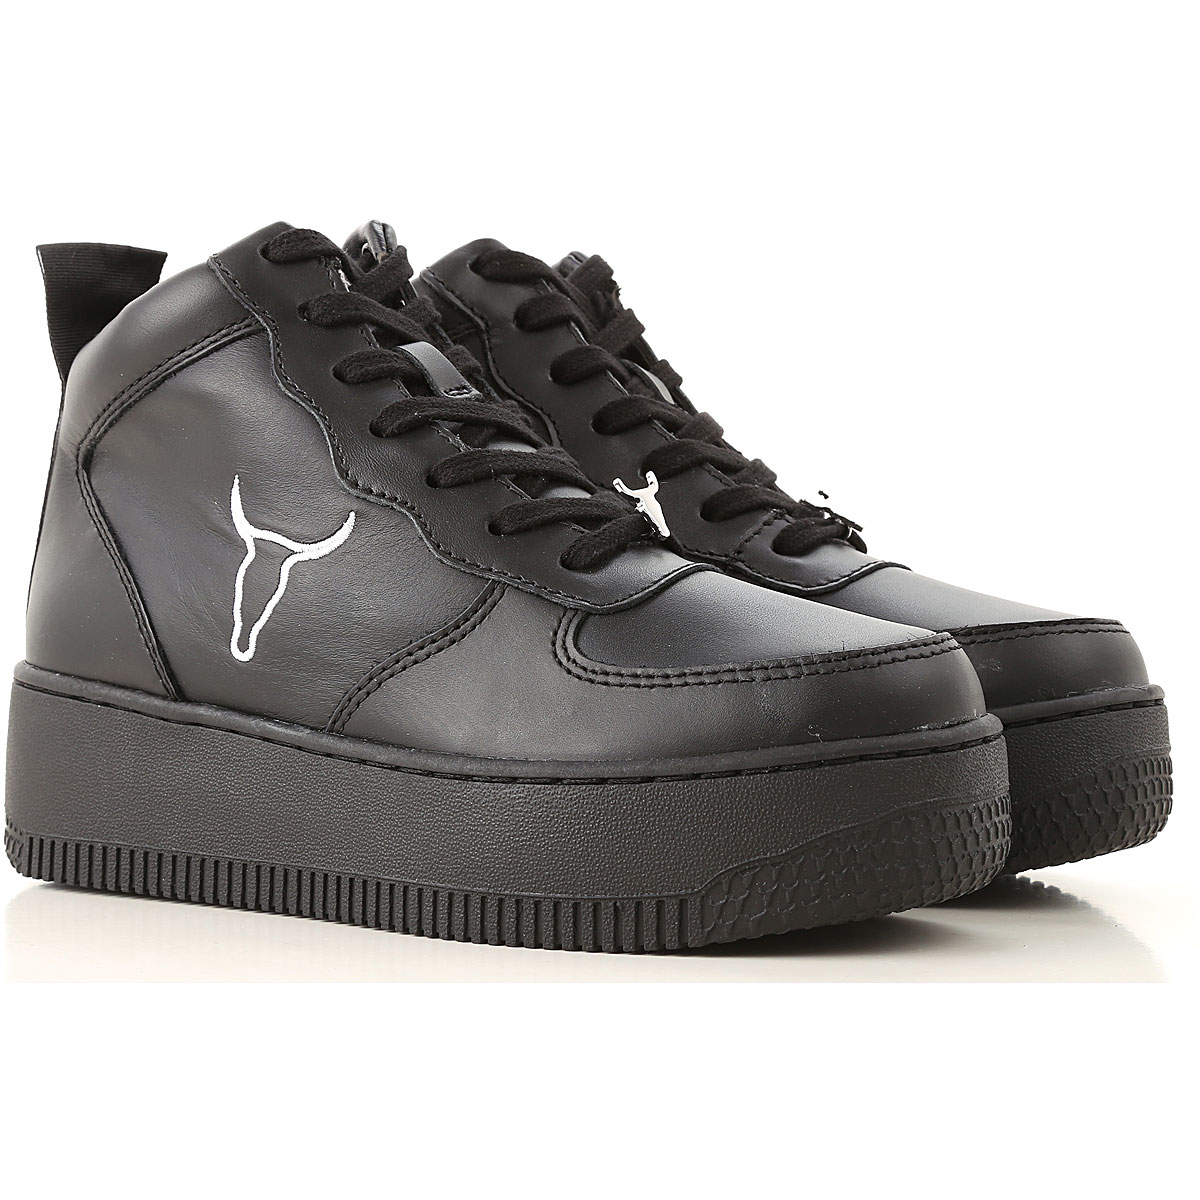 Image of Windsor Smith Sneakers for Women, Black, Leather, 2017, US 5 (EU 36) US 6 (EU 36.5) US 7 (EU 38) US 8 (EU 39) US 9 (EU 40)